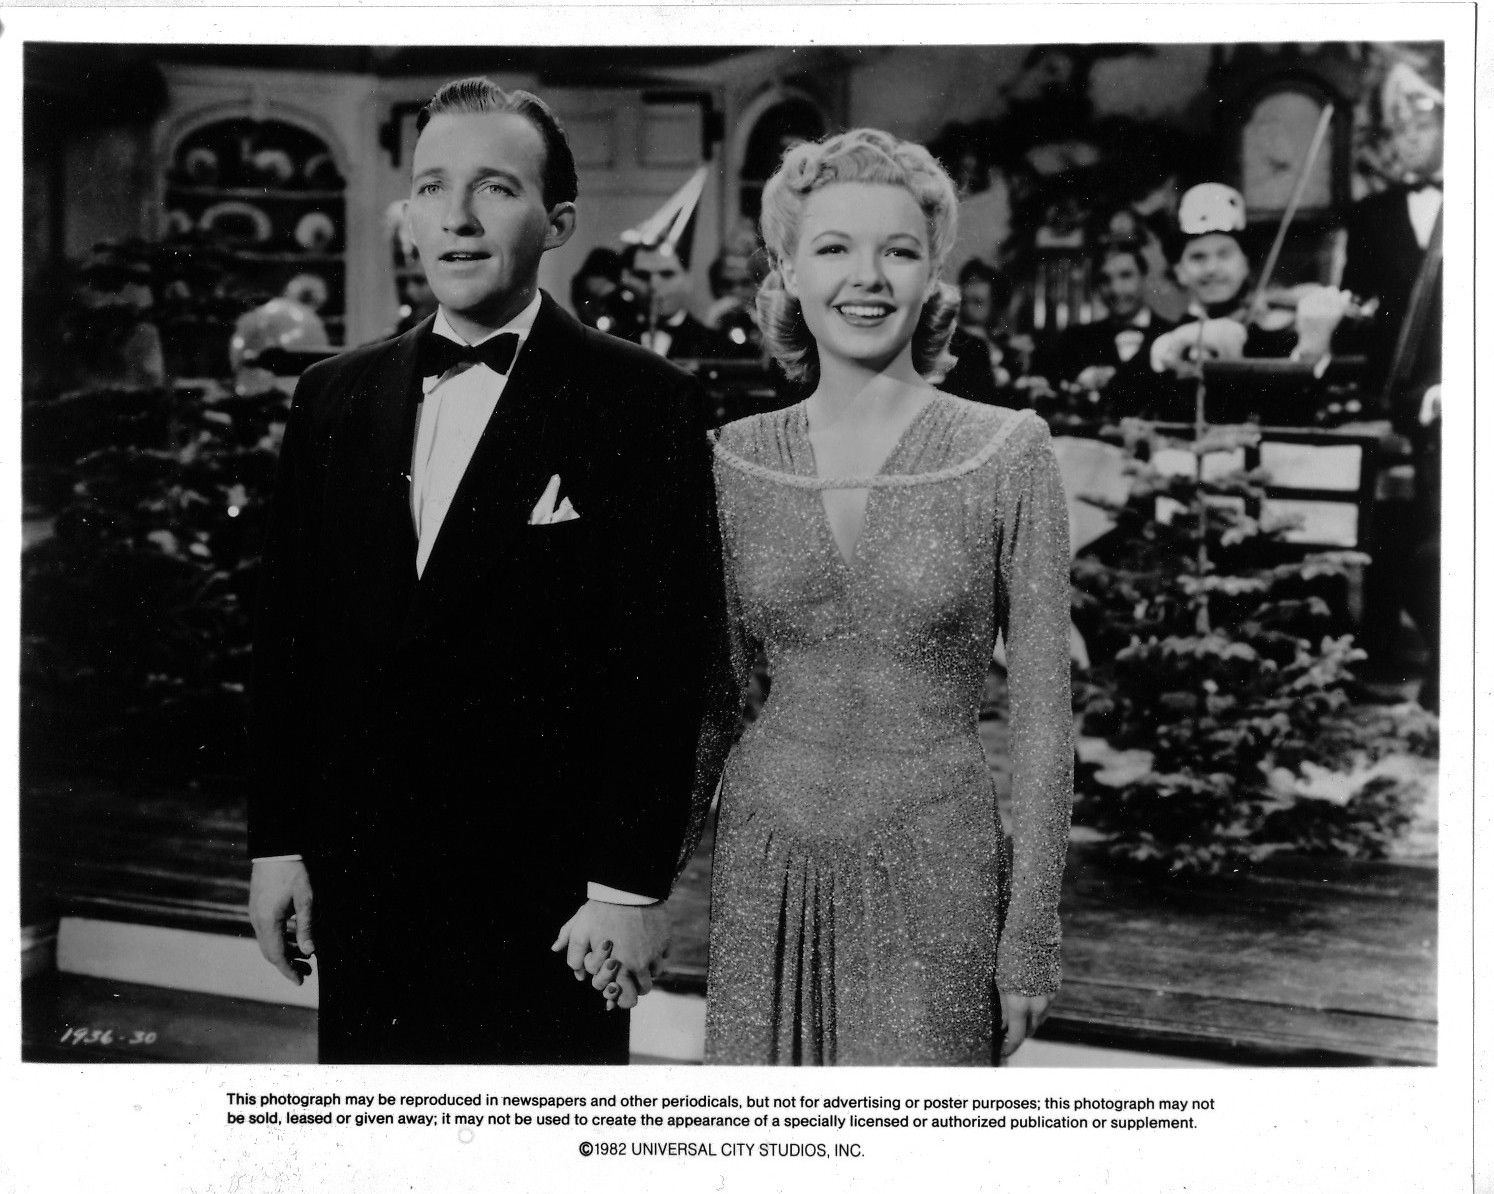 Bing Crosby And Marjorie Reynolds Film Still From Holiday Inn One Of Our Favorite Movies White Christmas Movie Classic Christmas Movies Classic Hollywood